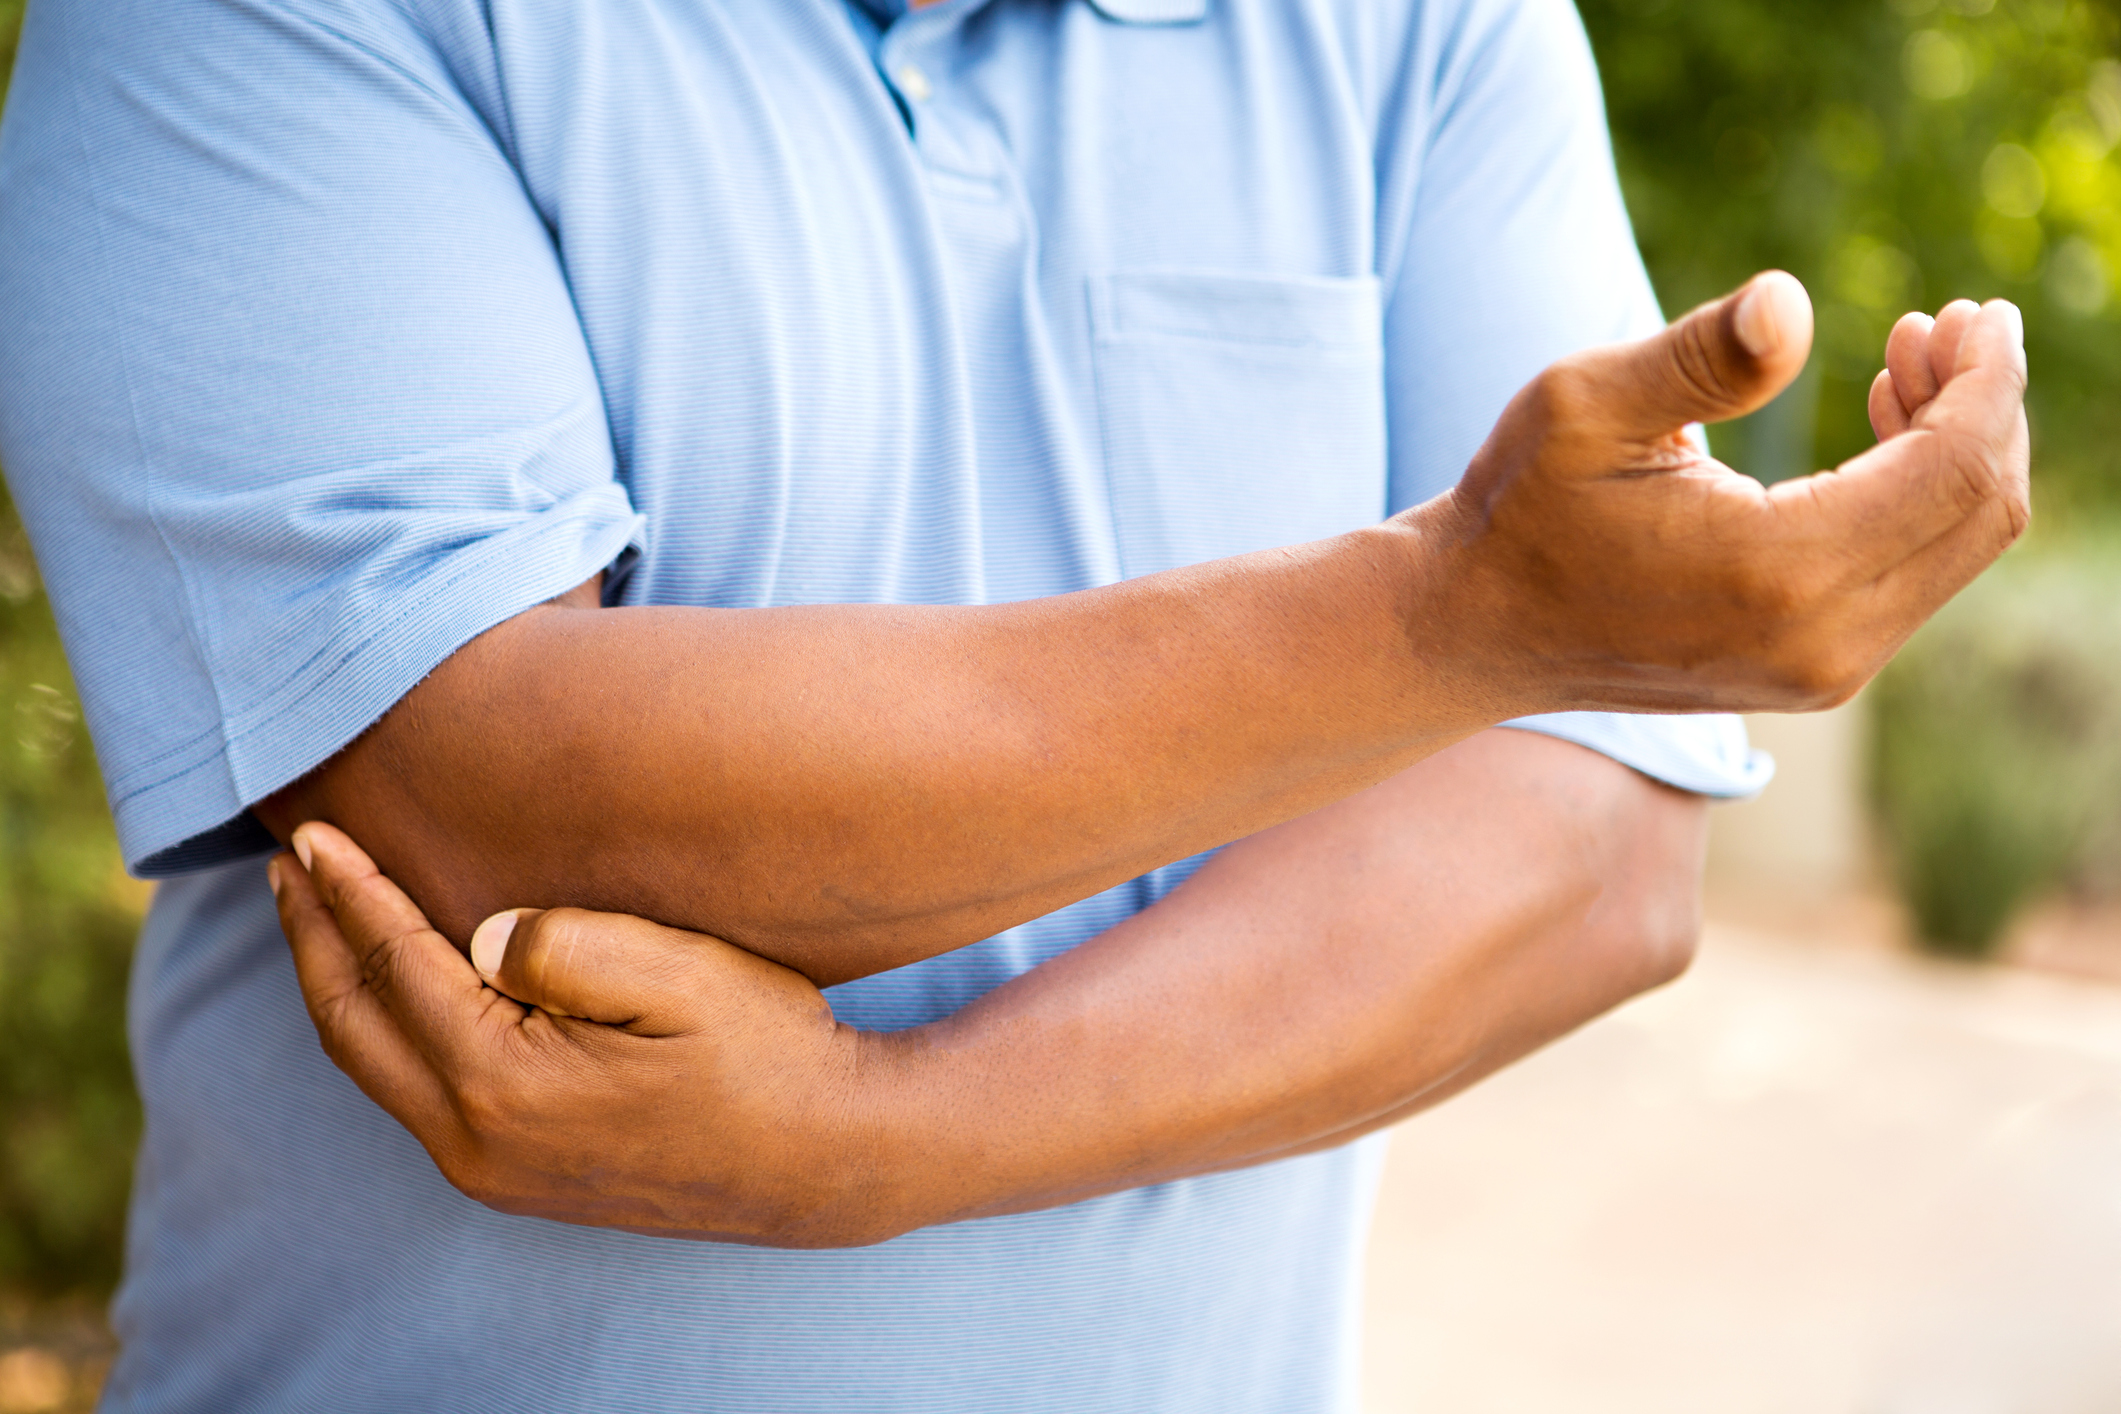 Causes of Elbow Pain Tingling Fingers LIVESTRONGCOM